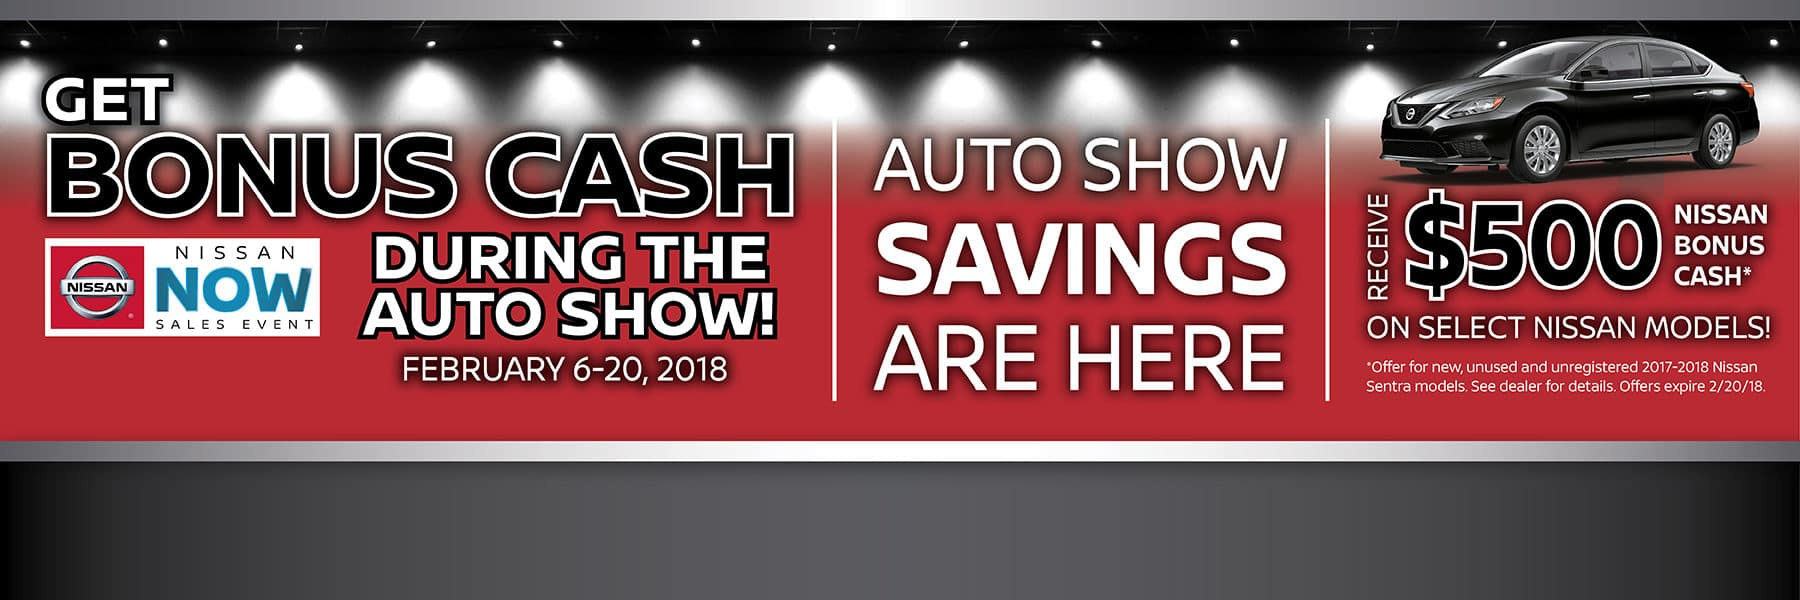 Auto Show Savings Are Here! Get $500 Bonus Cash during the Chicago Auto Show February 6th-20th at Berman Nissan of Chicago!